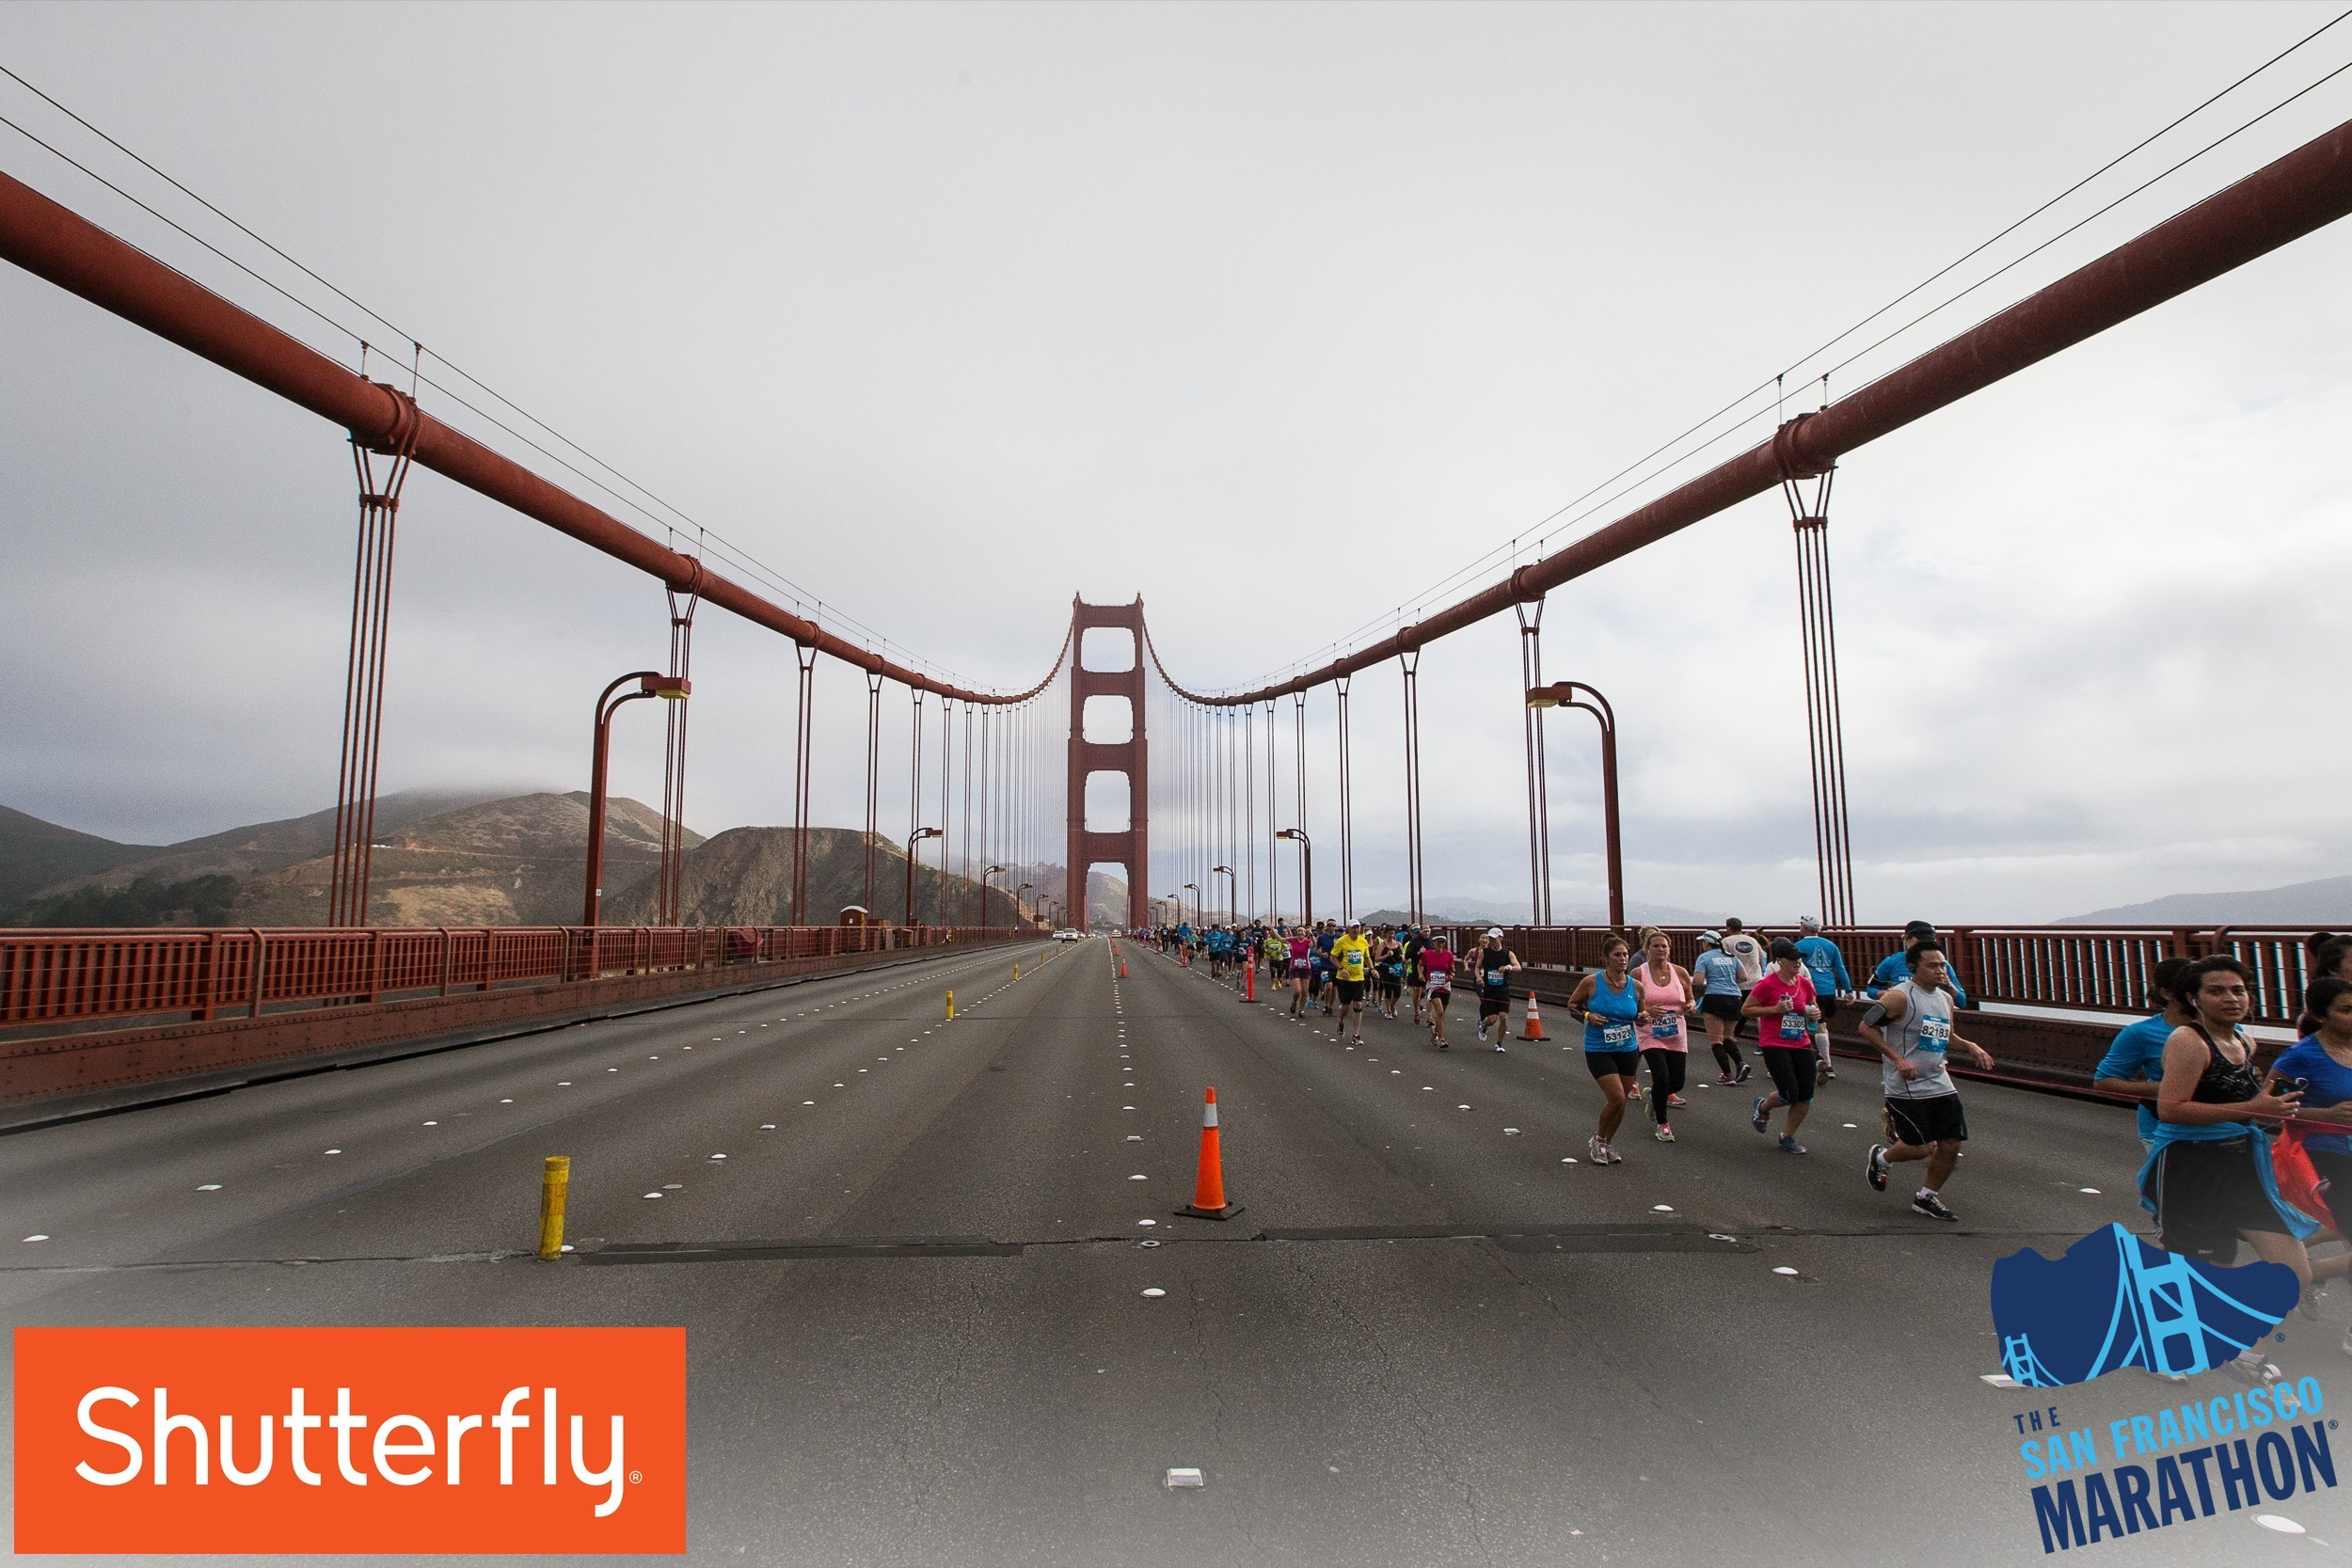 I'm in there somewhere. Photo courtesy of The San Francisco Marathon.